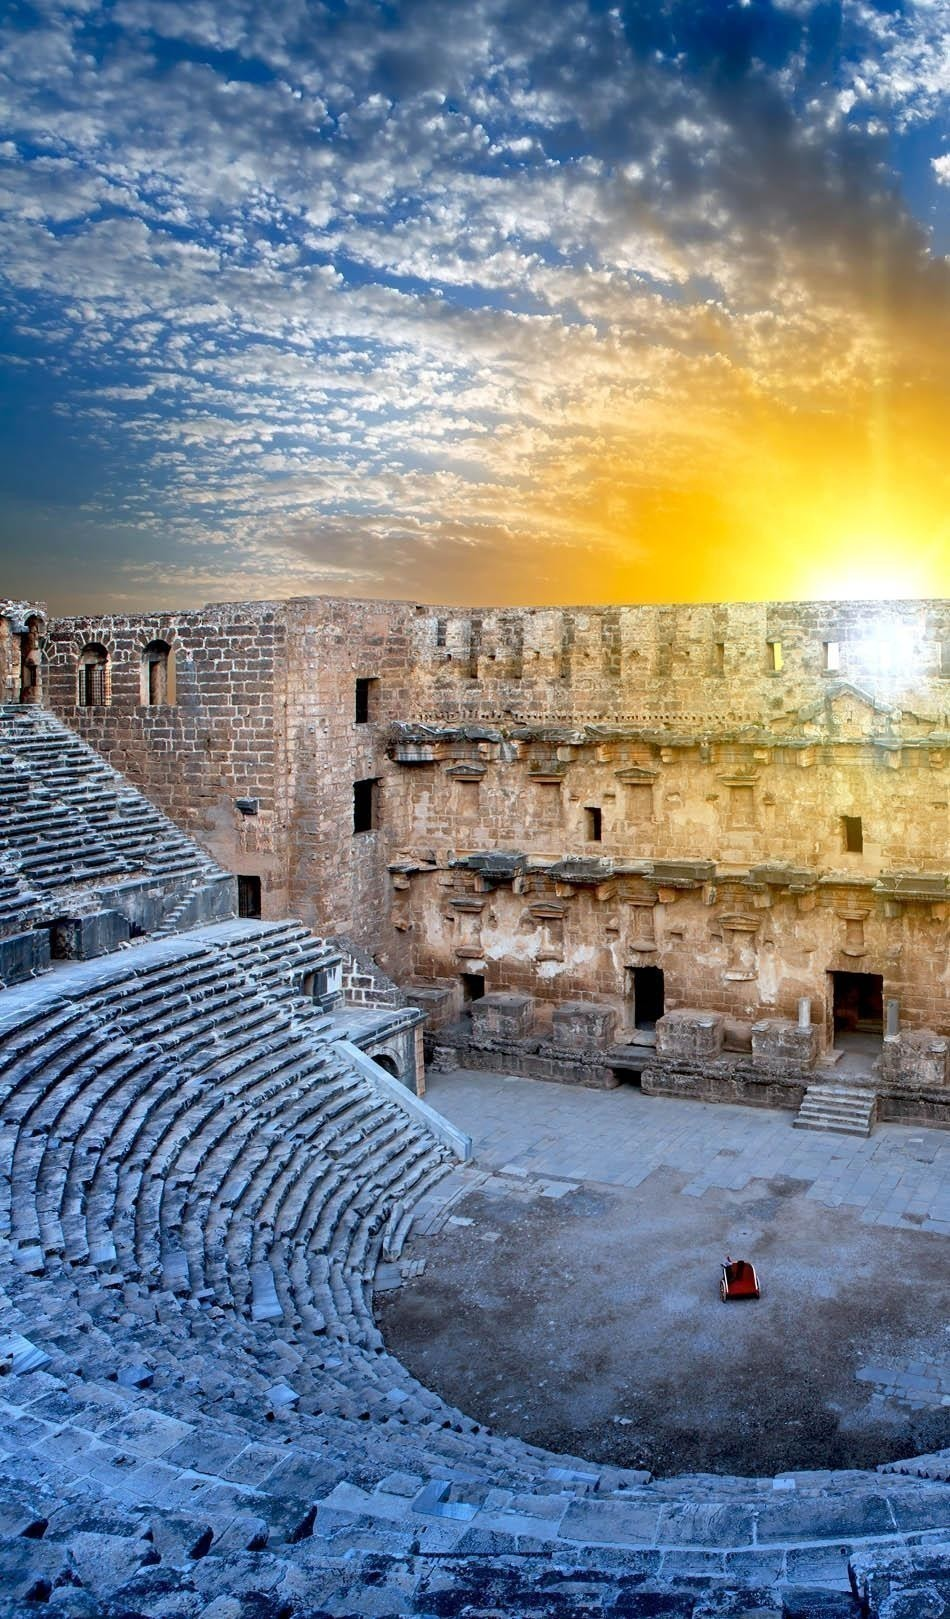 Aspendos Amphitheater with Dramatic sky (Antalya Turkey) | Turkey Travel Guide